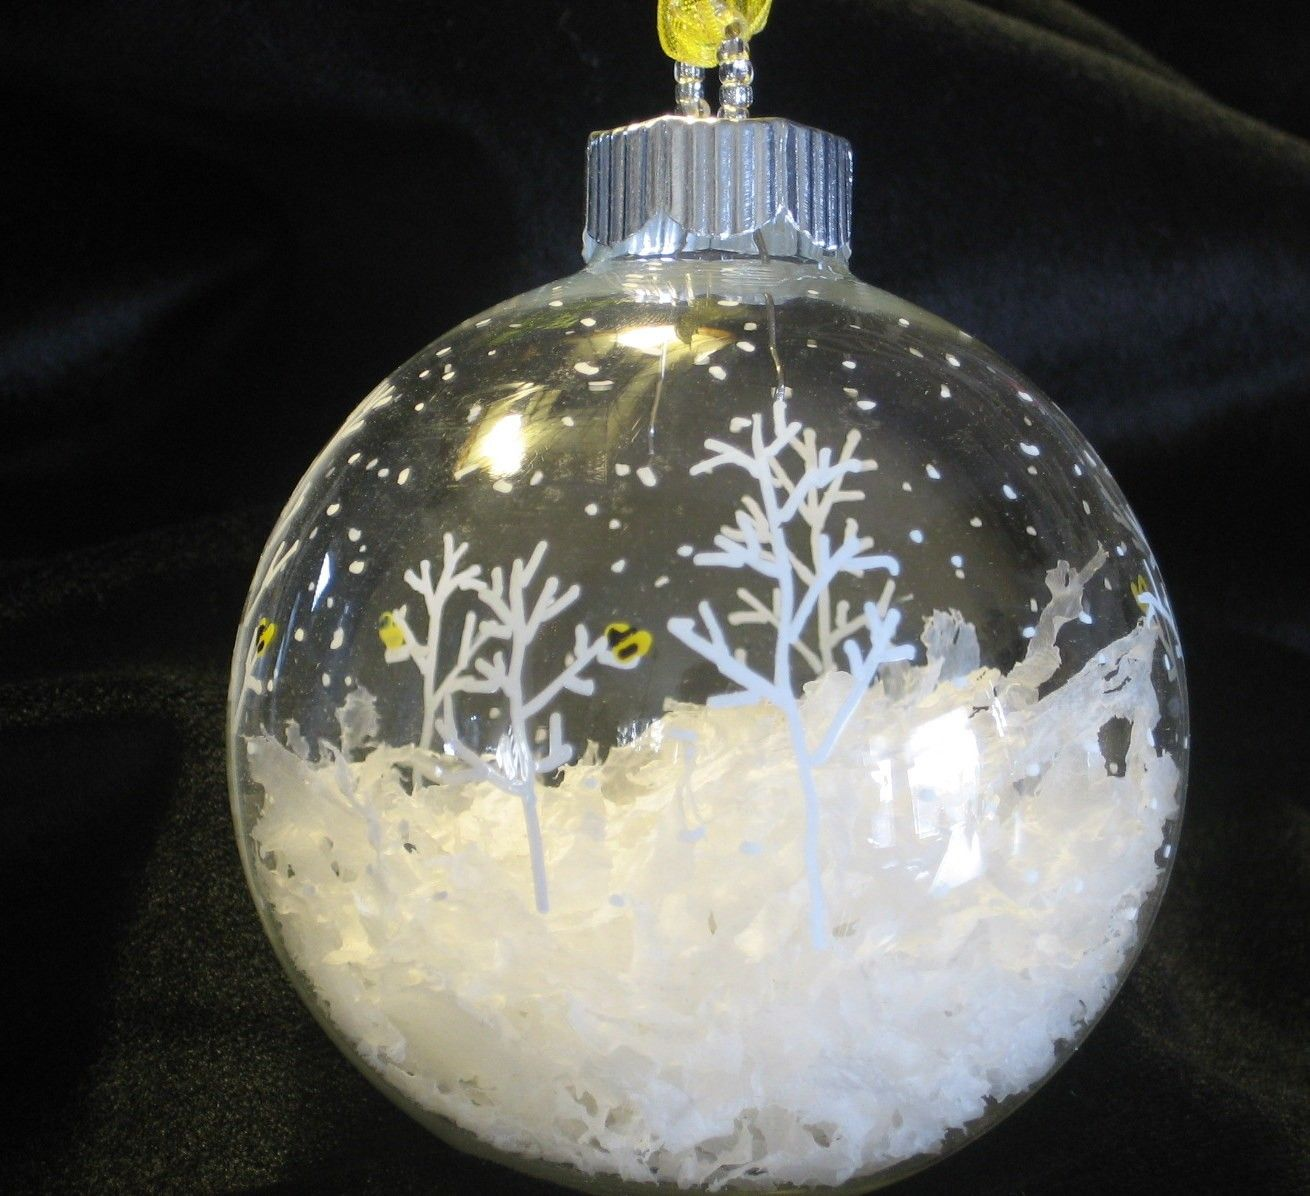 Hand Painted Glass Christmas Ball Ornament Gold Finch Snow Scene 11 00 Via Etsy Painted Christmas Ornaments Christmas Ornaments Diy Christmas Ornaments